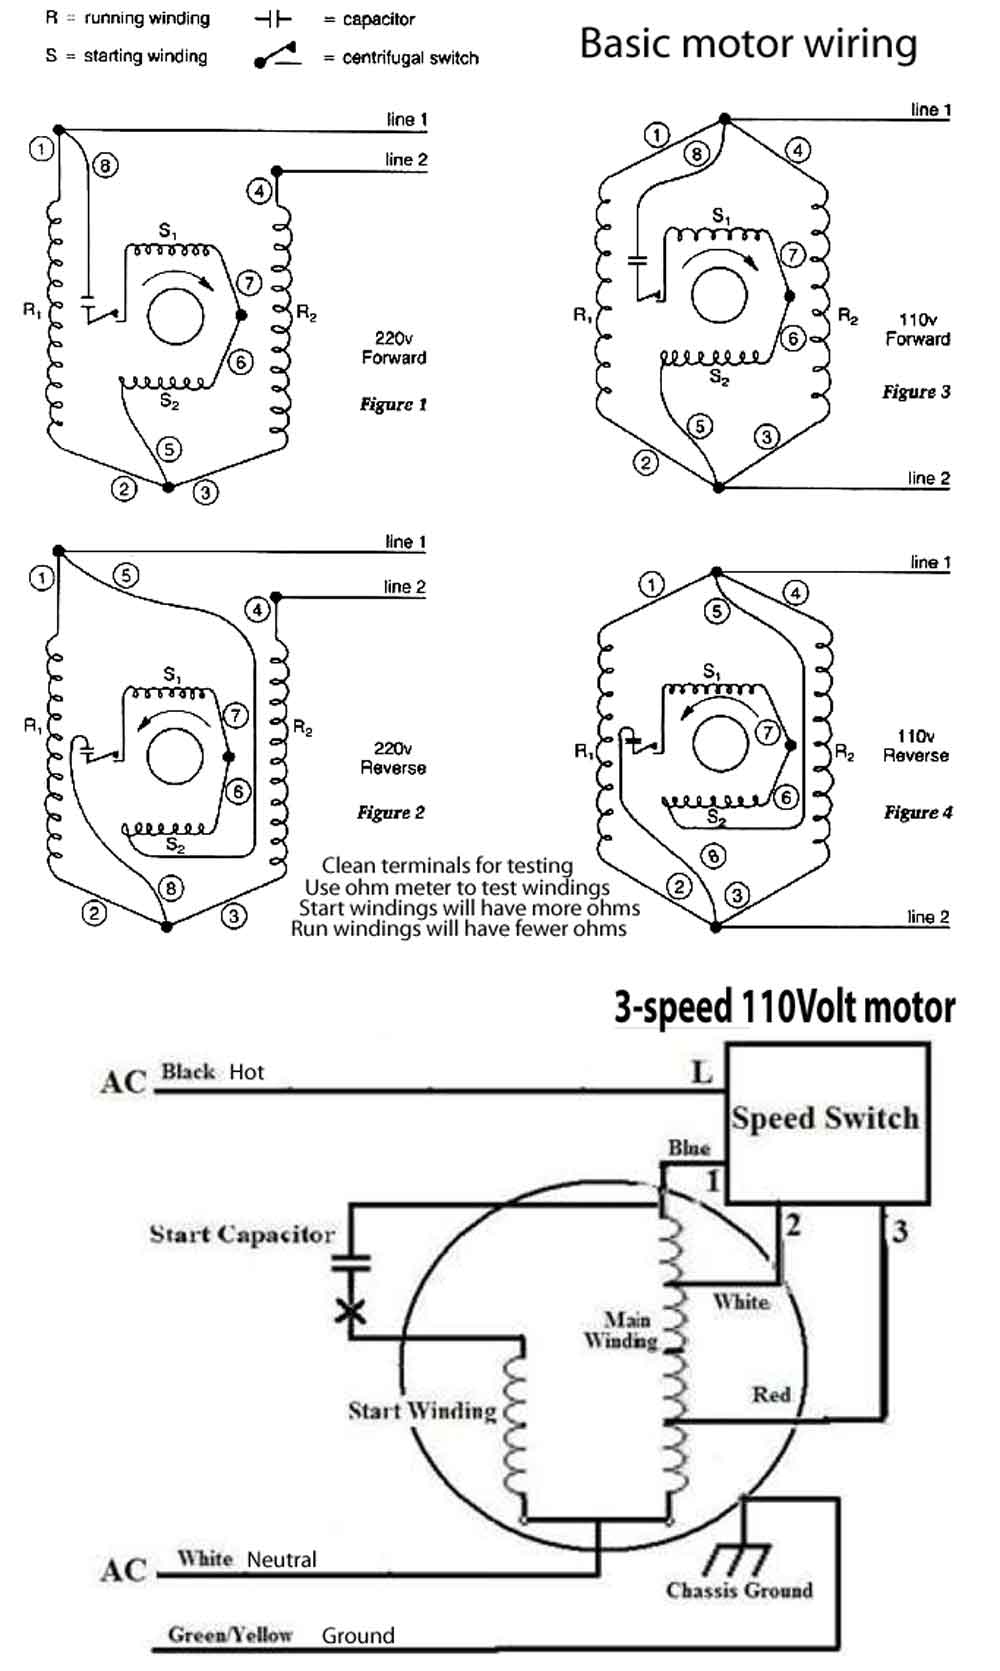 Wiring Diagram For 5 Wire 120 Volt Motor | Wiring Diagram on